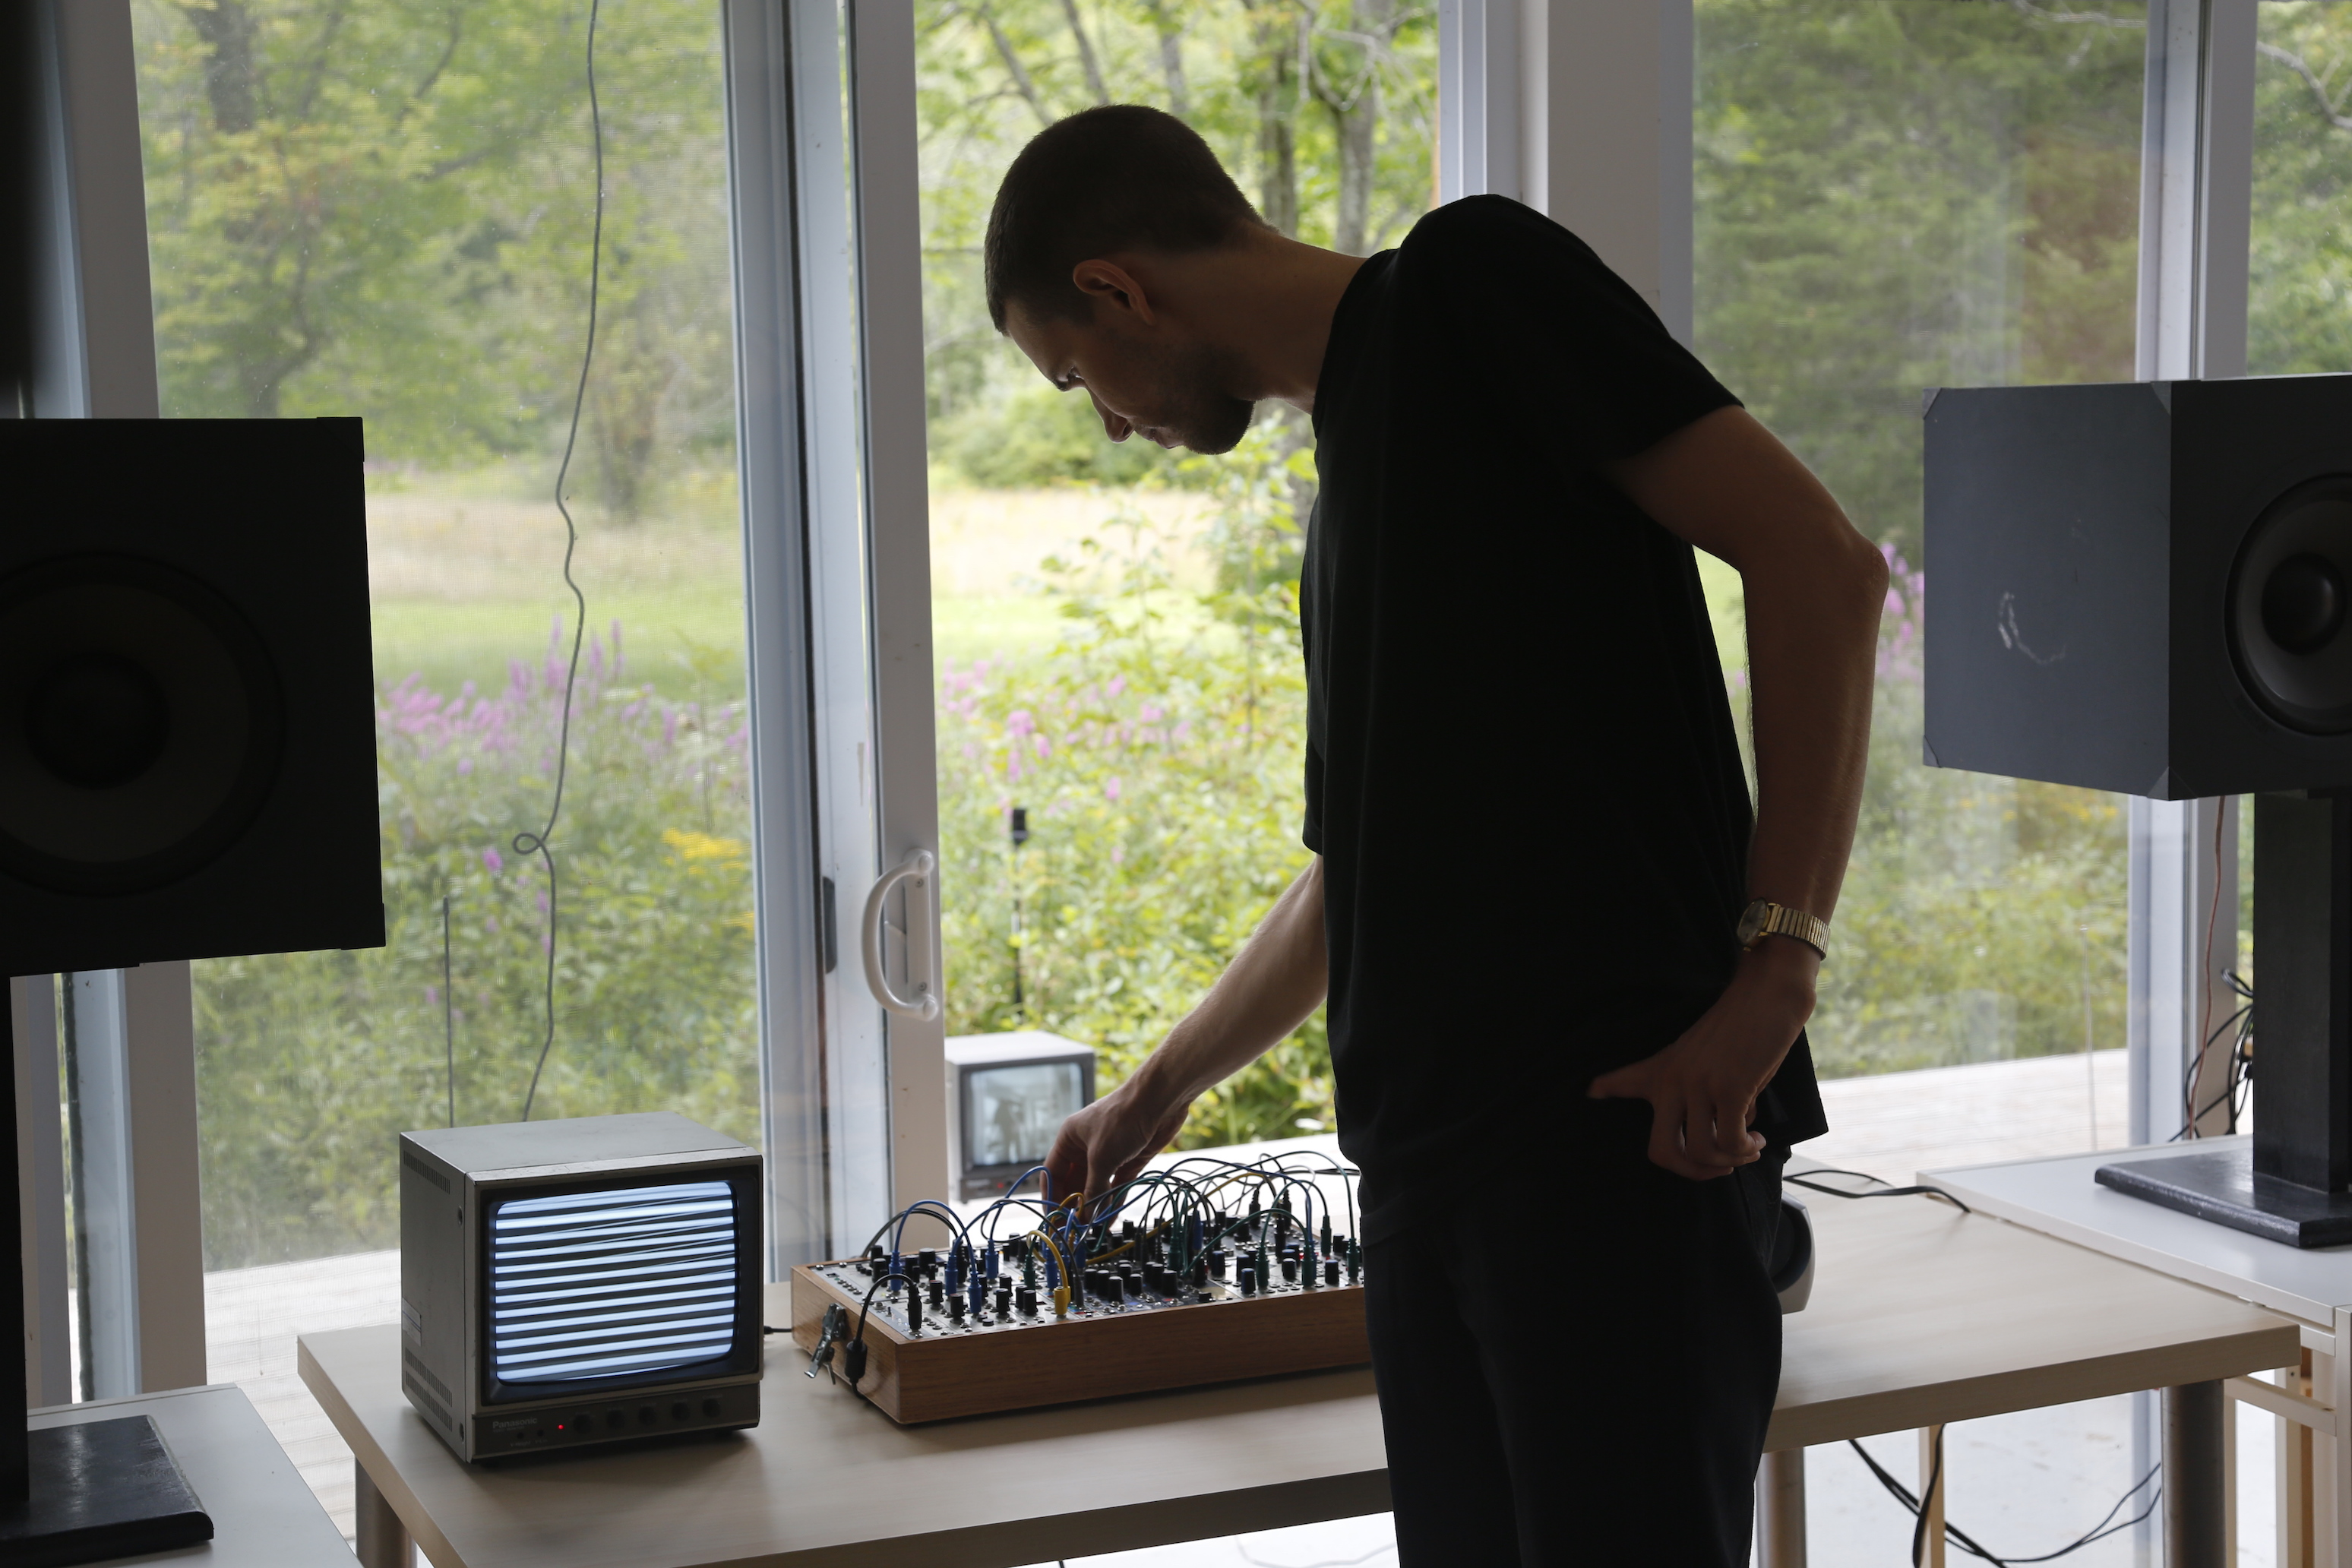 Angus Tarnawsky Composing Sound from the Surveillance Cameras on the Wave Farm Grounds: Image 2